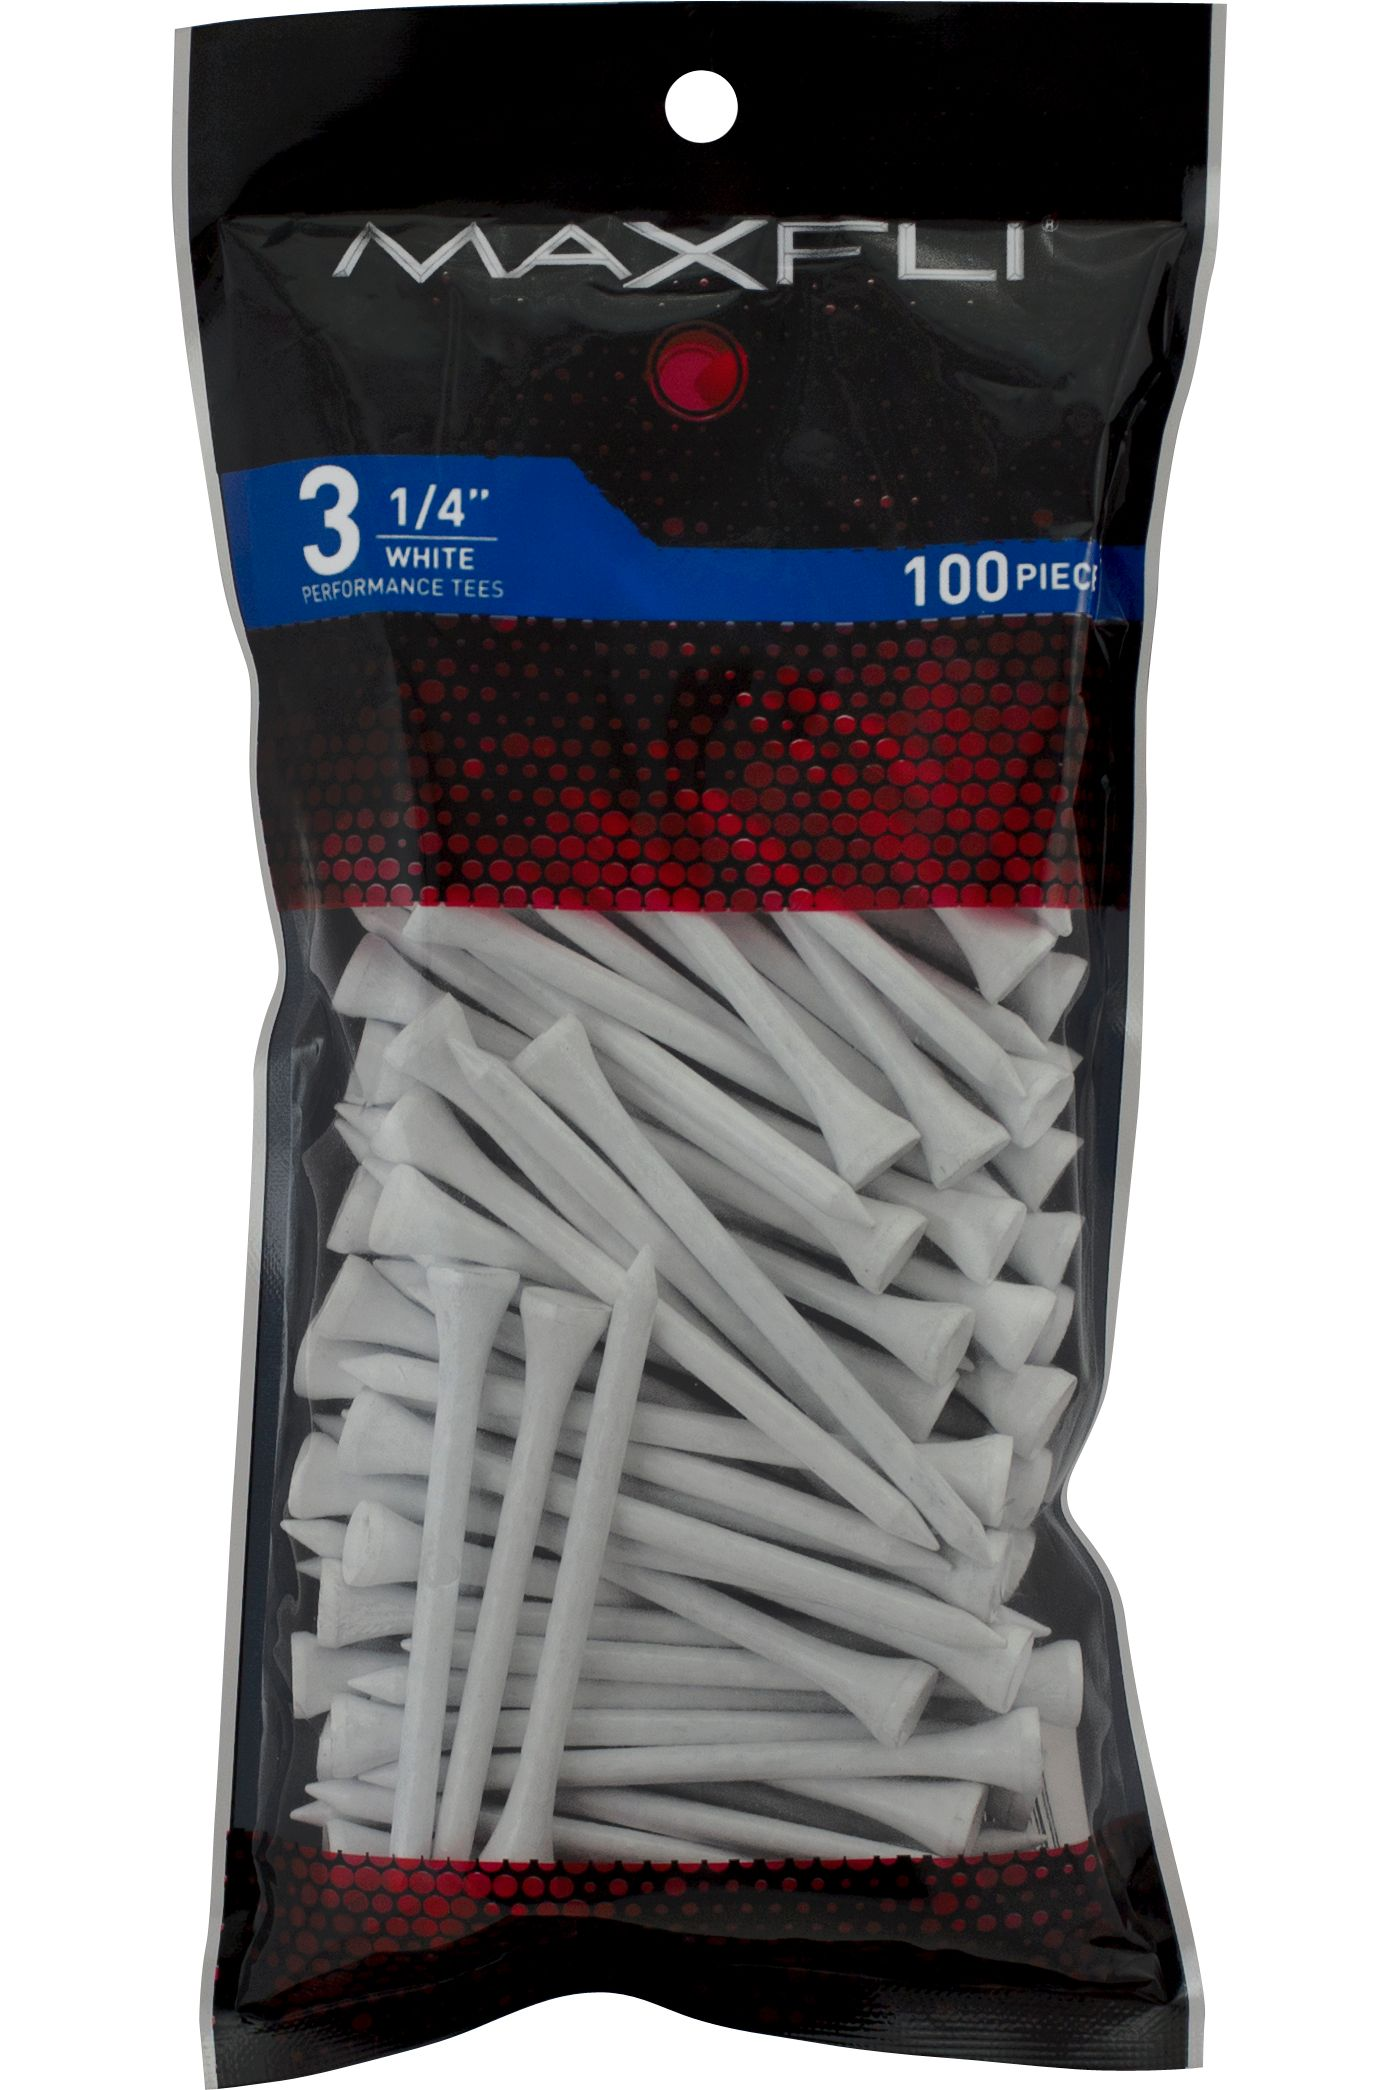 Maxfli 3 1/4'' White Golf Tees - 100 Pack